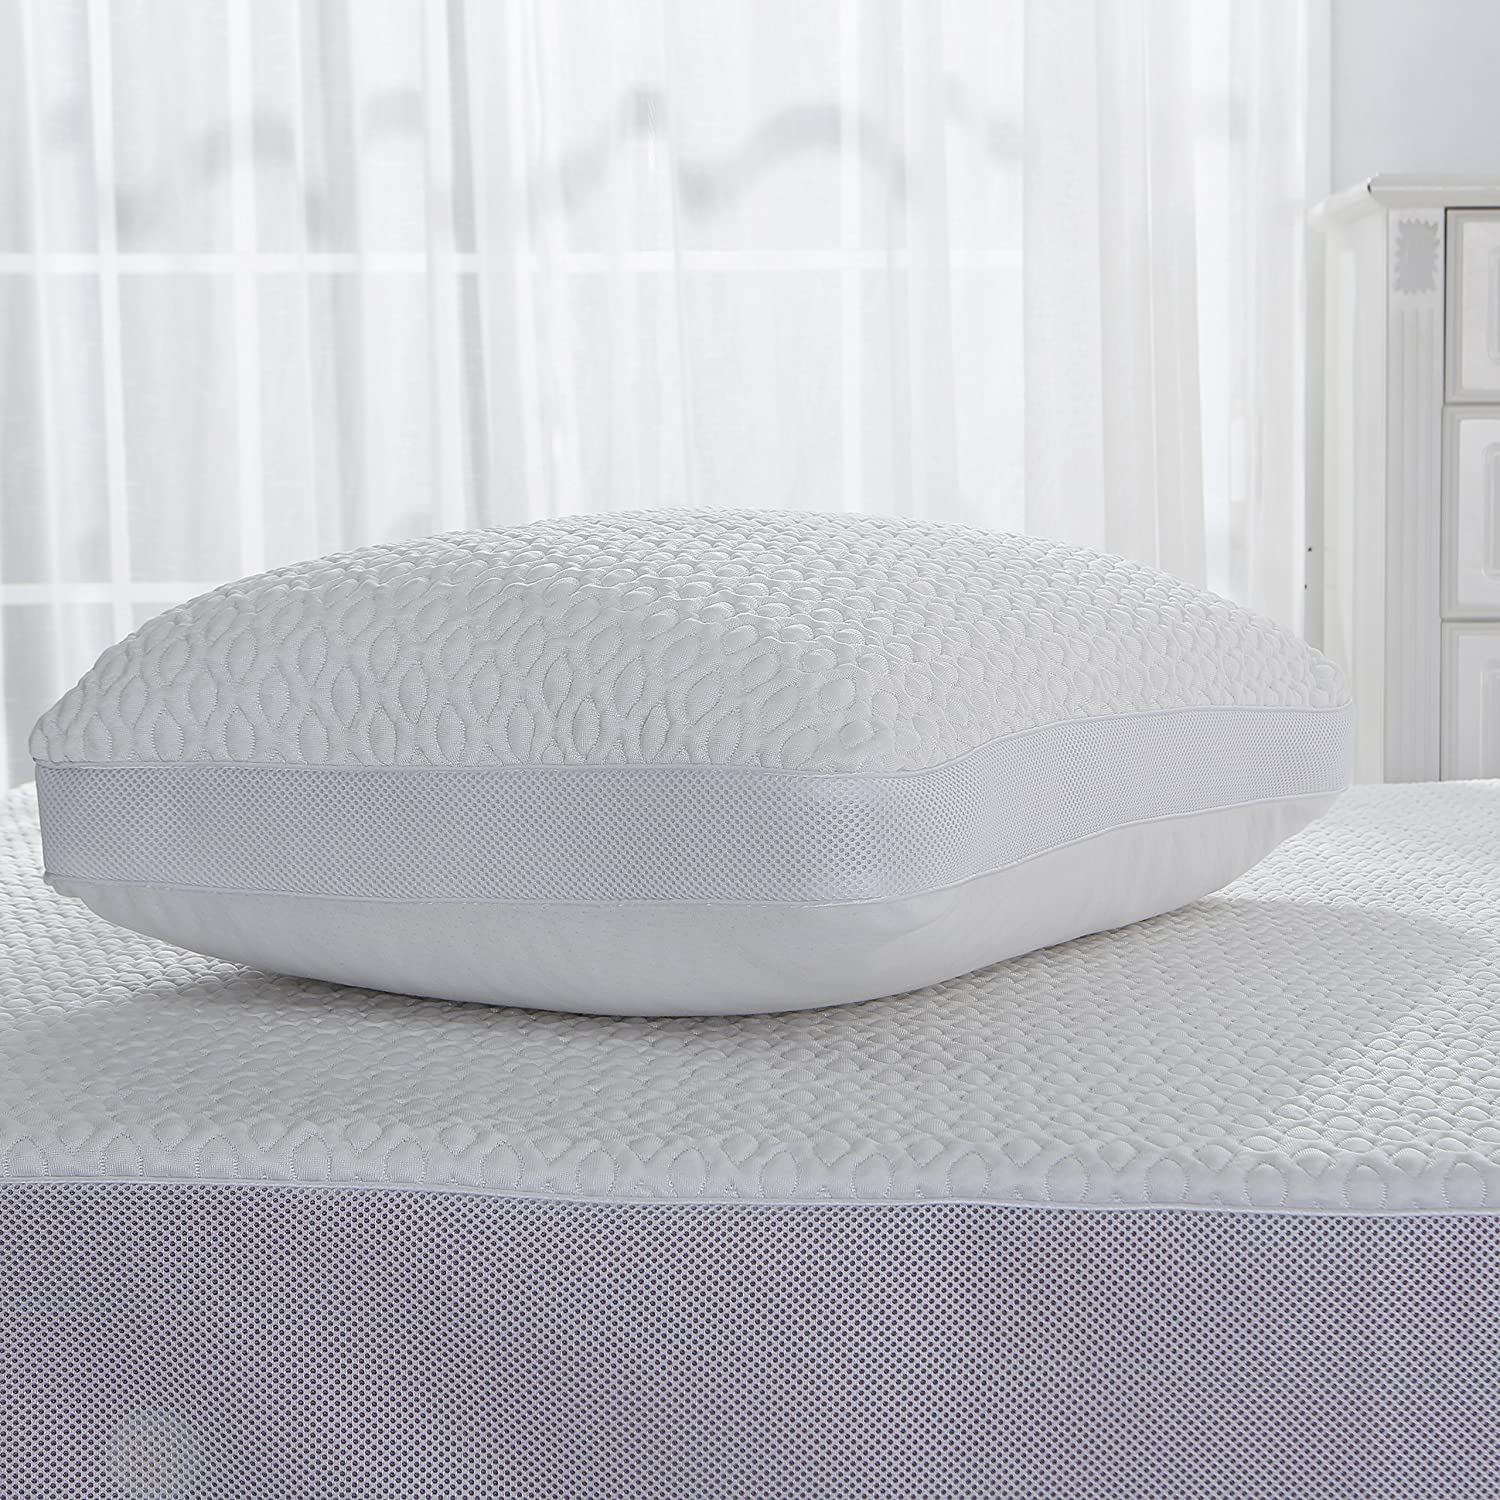 Levinsohn Cooling Mattress Pad Cover Soft and Comfortable Hypoallergenic with Mesh, King, White Levinsohn Textiles FRE161XXWHIT04